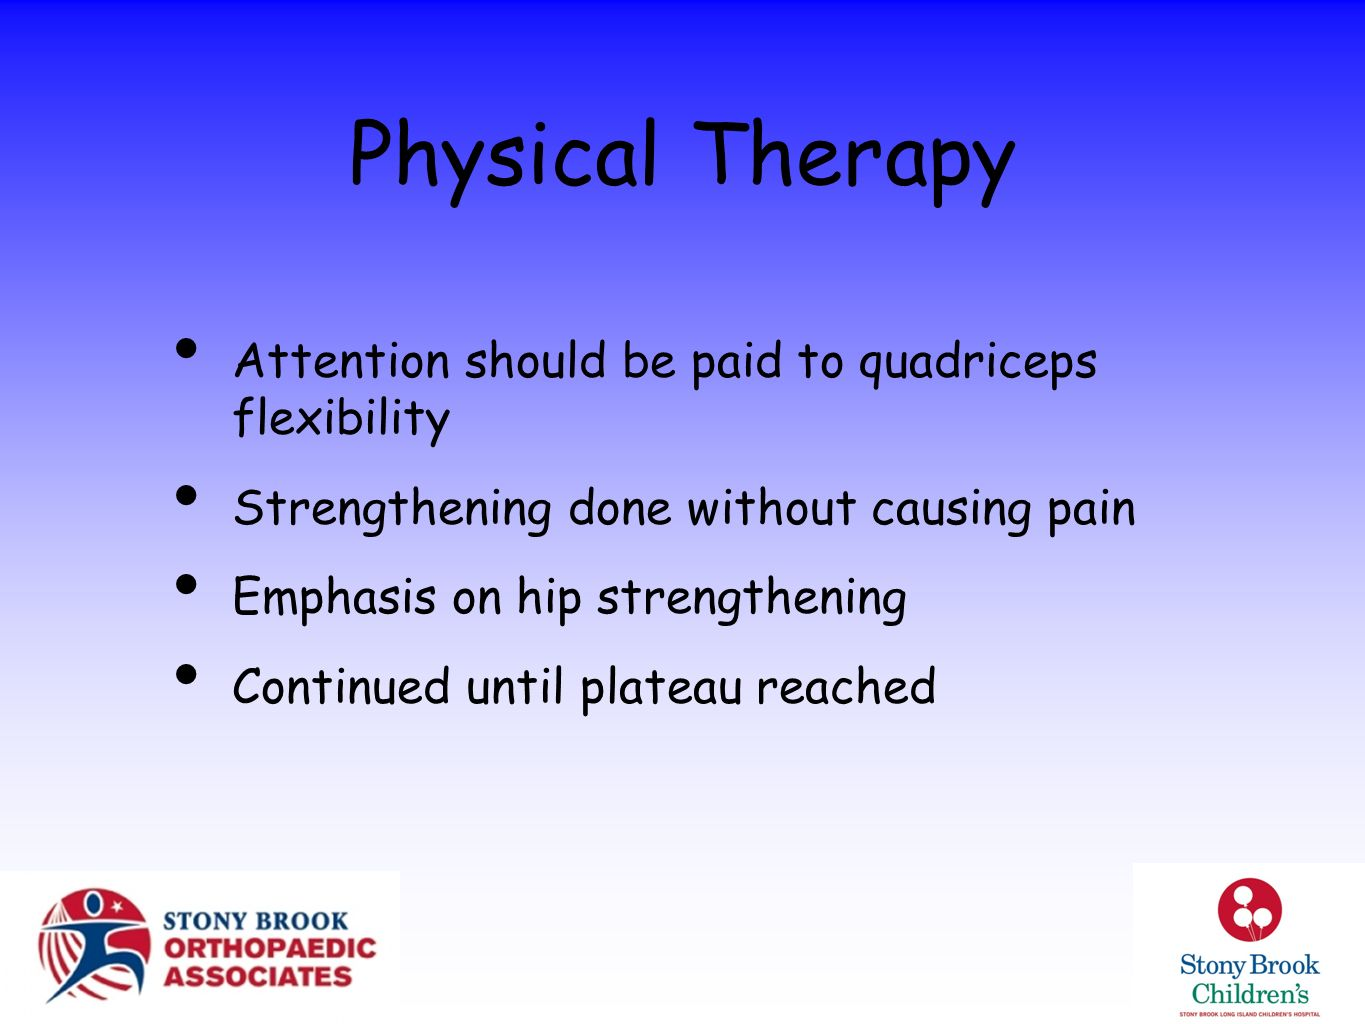 Physical Therapy Attention should be paid to quadriceps flexibility